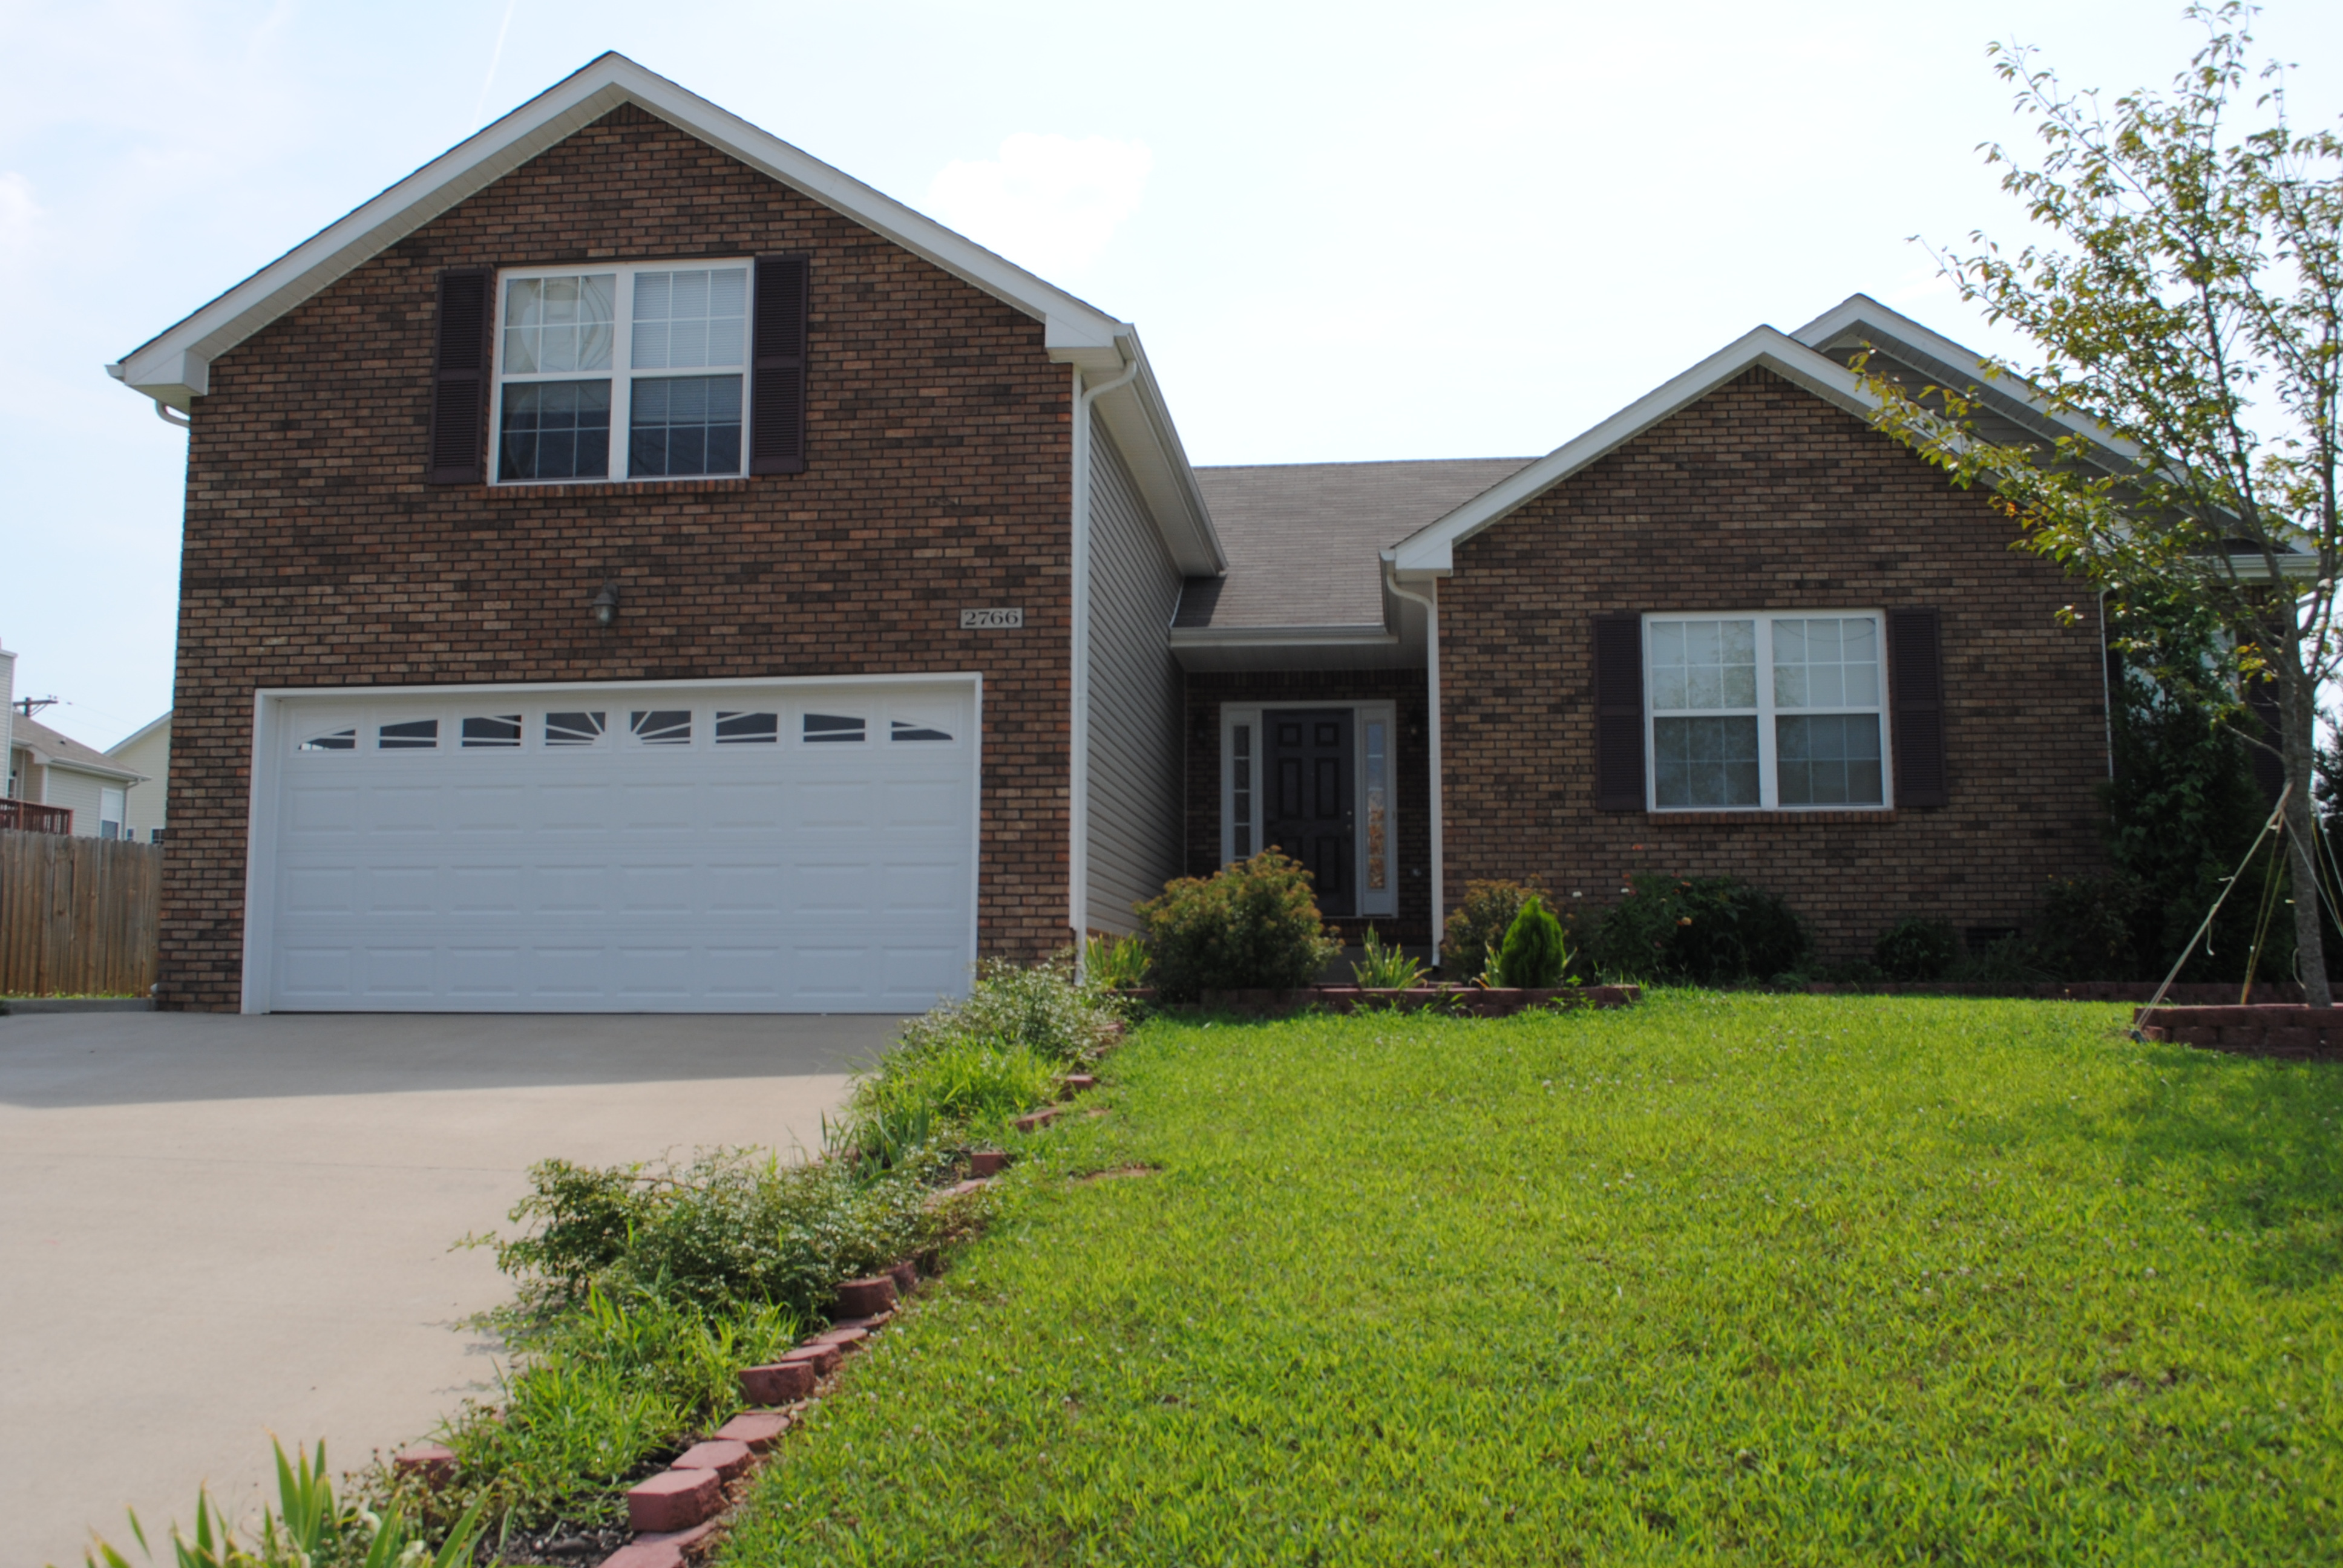 Homes for sale clarksville tennessee search all homes for Home builders clarksville tn